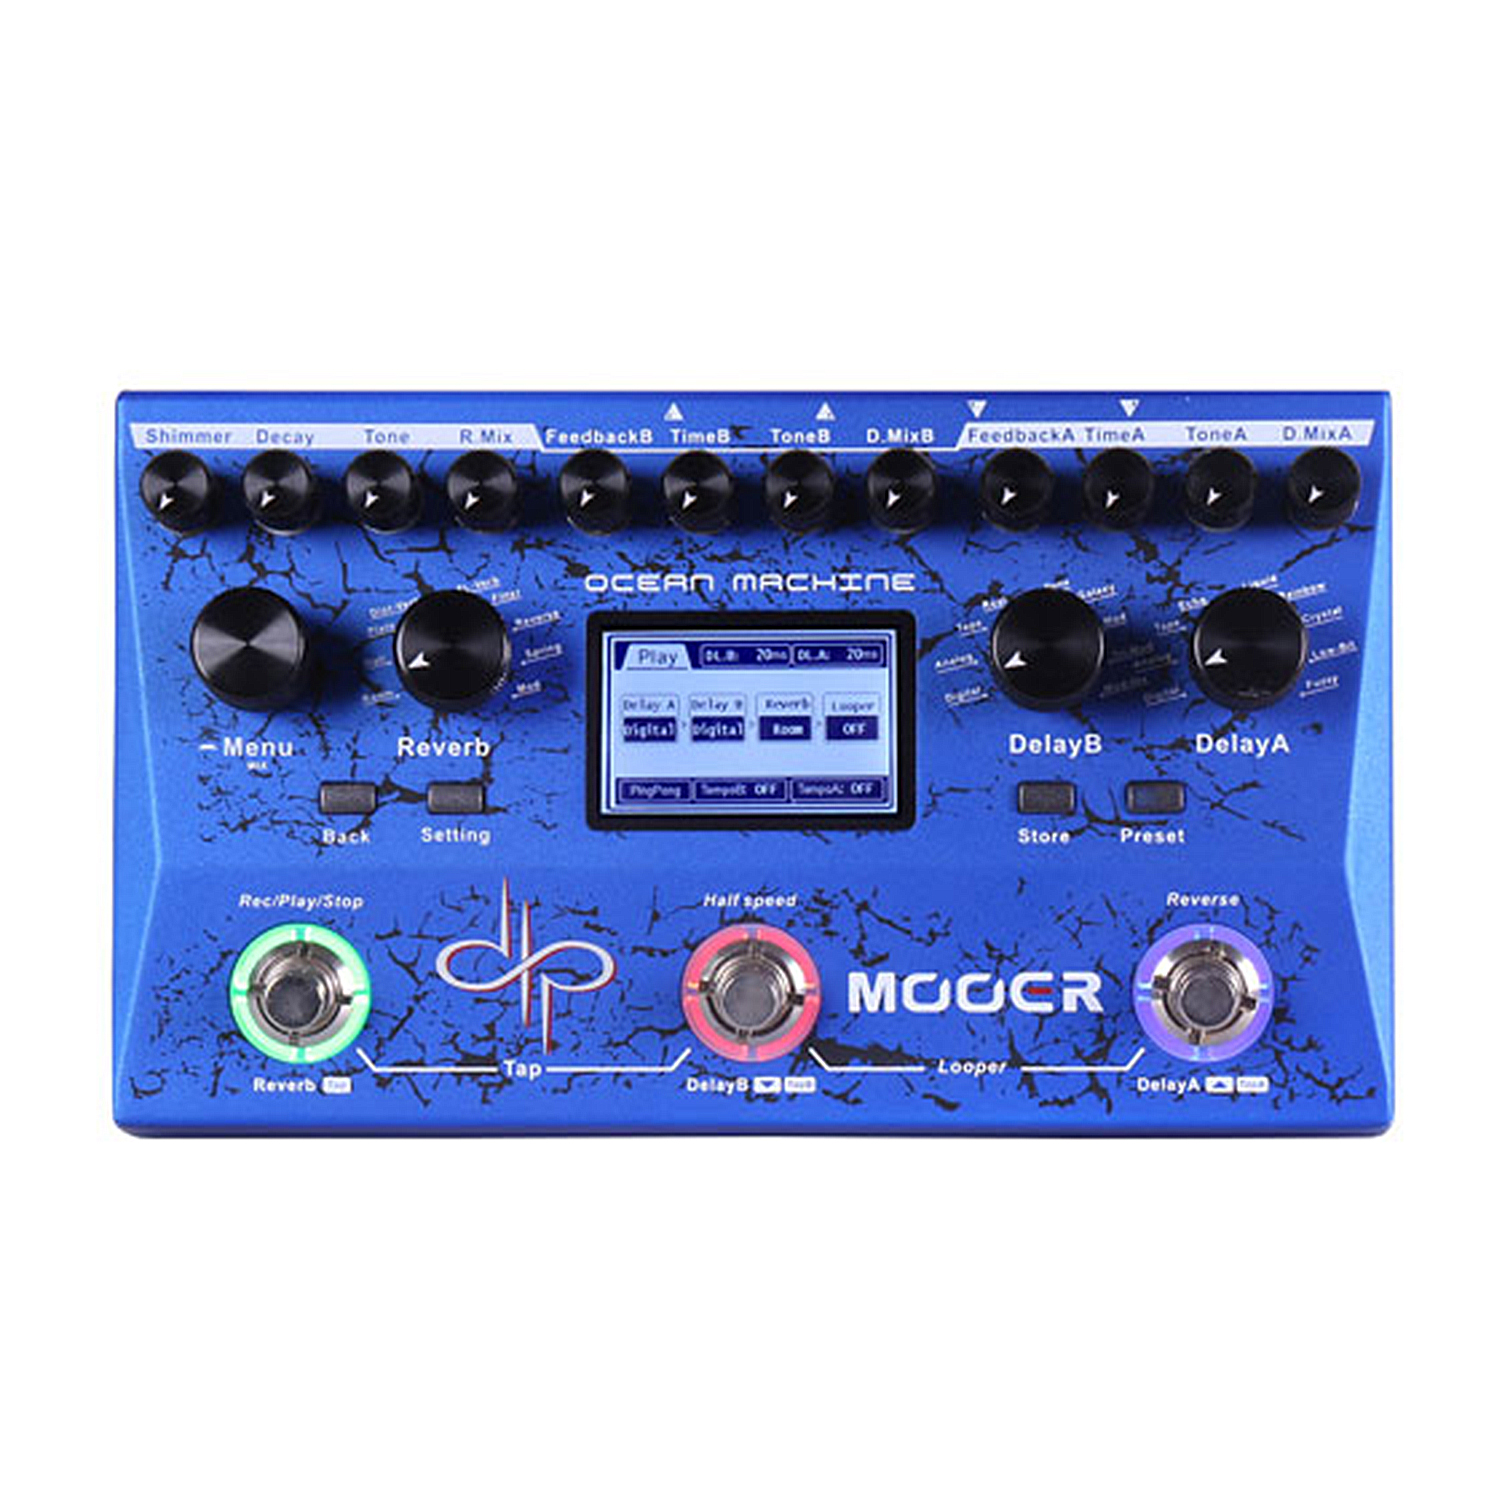 Mooer Ocean Machine Multi Guitar Effects Pedal 9 Reverb 15 Delay 24 Preset Spaces Professional Delay Reverb Looper TDL3 хай хэт и контроллер для электронной ударной установки roland fd 9 hi hat controller pedal